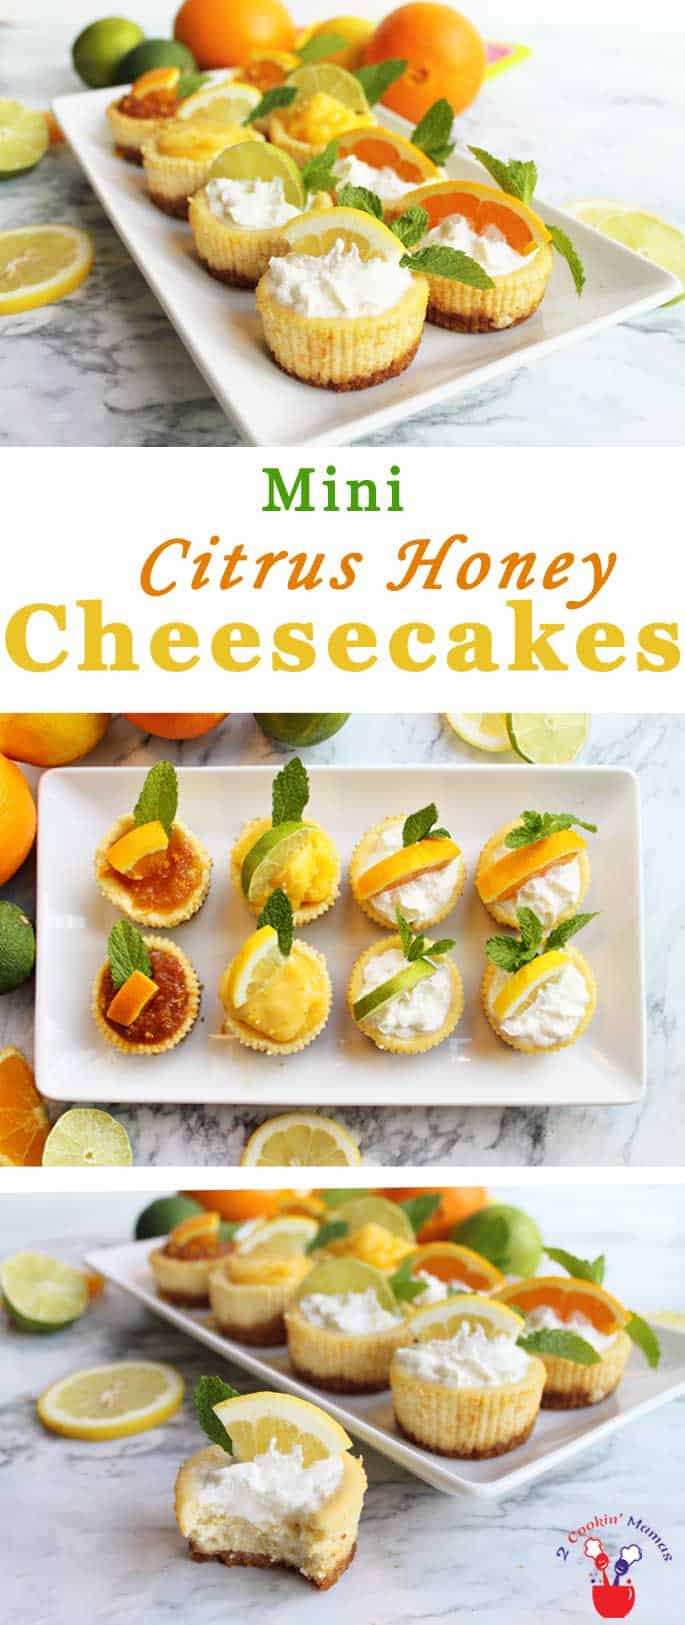 Mini Citrus Honey Cheesecakes | 2 Cookin Mamas Our easy citrus honey cheesecakes are creamy, honey-sweetened & flavored with fresh oranges, lemons & limes. The perfect cool mini dessert for summer.